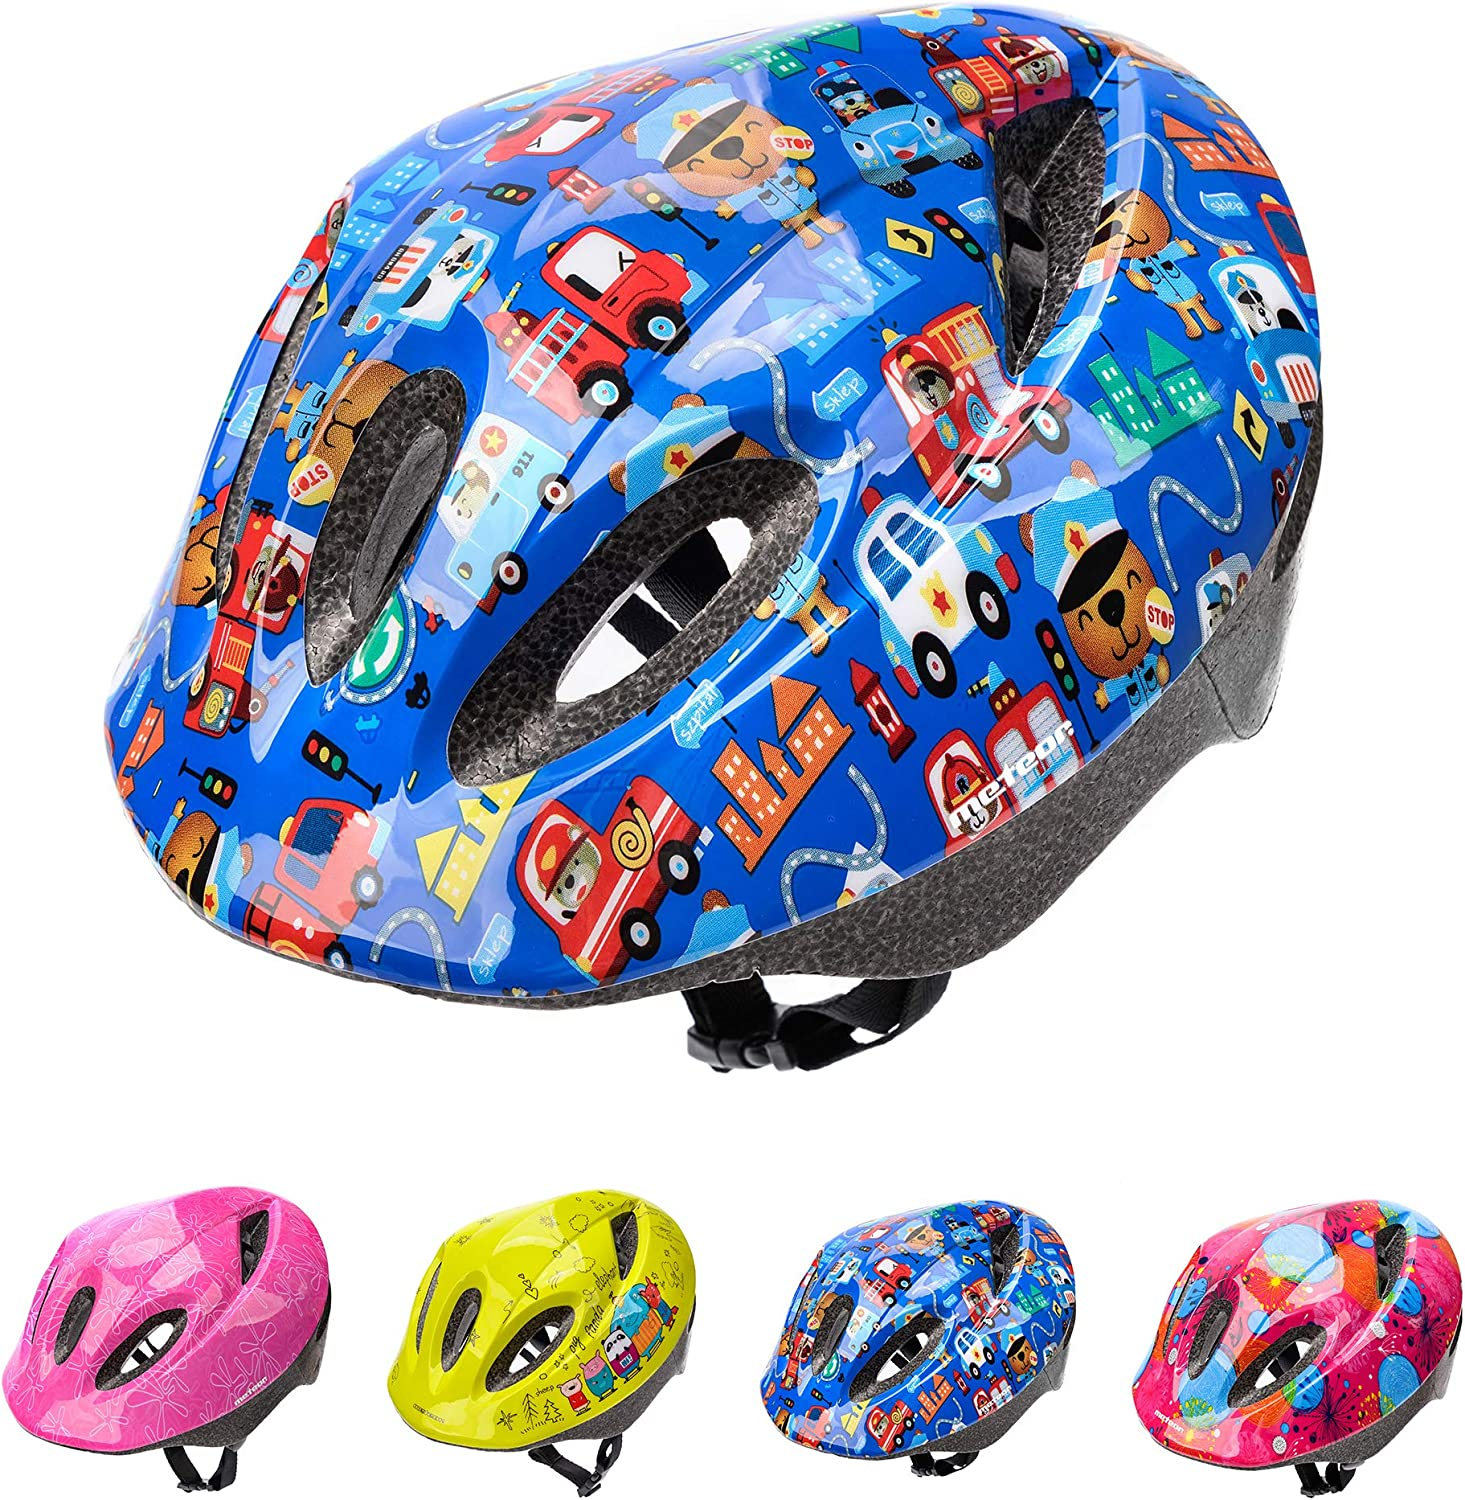 52 56cm 20 4 22 Inch Meteor Cycle Helmet For Kids Child Helmet Mtb Bike Bicycle Skateboard Scooter Hoverboard Helmet For Riding Safety Lightweight Adjustable Breathable Helmet Mv5 2 M Safe City Sports Outdoors Cycling